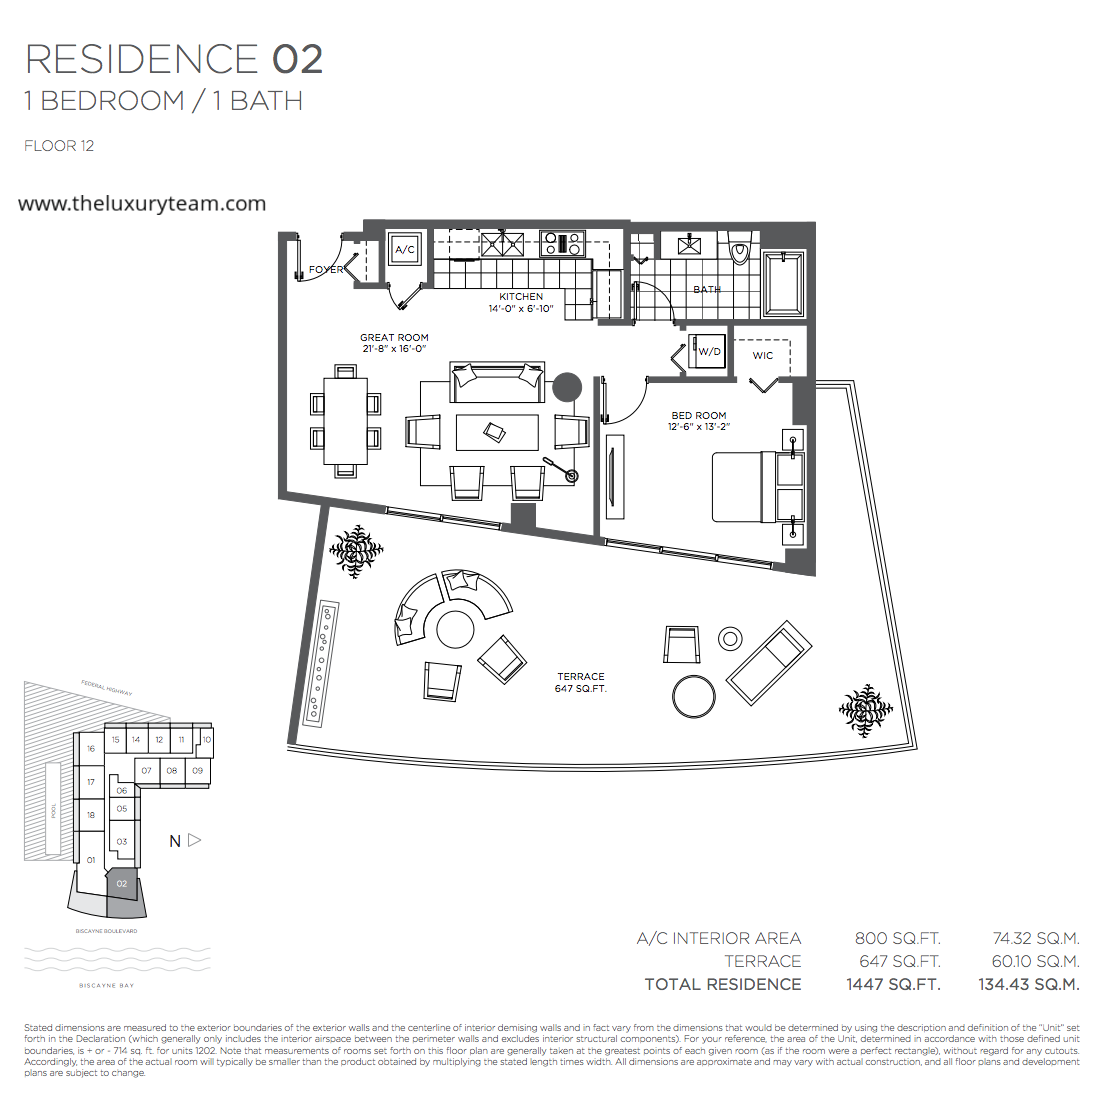 Marina Blue Floor Plans: New Condos At Baltus House—The Luxury Team